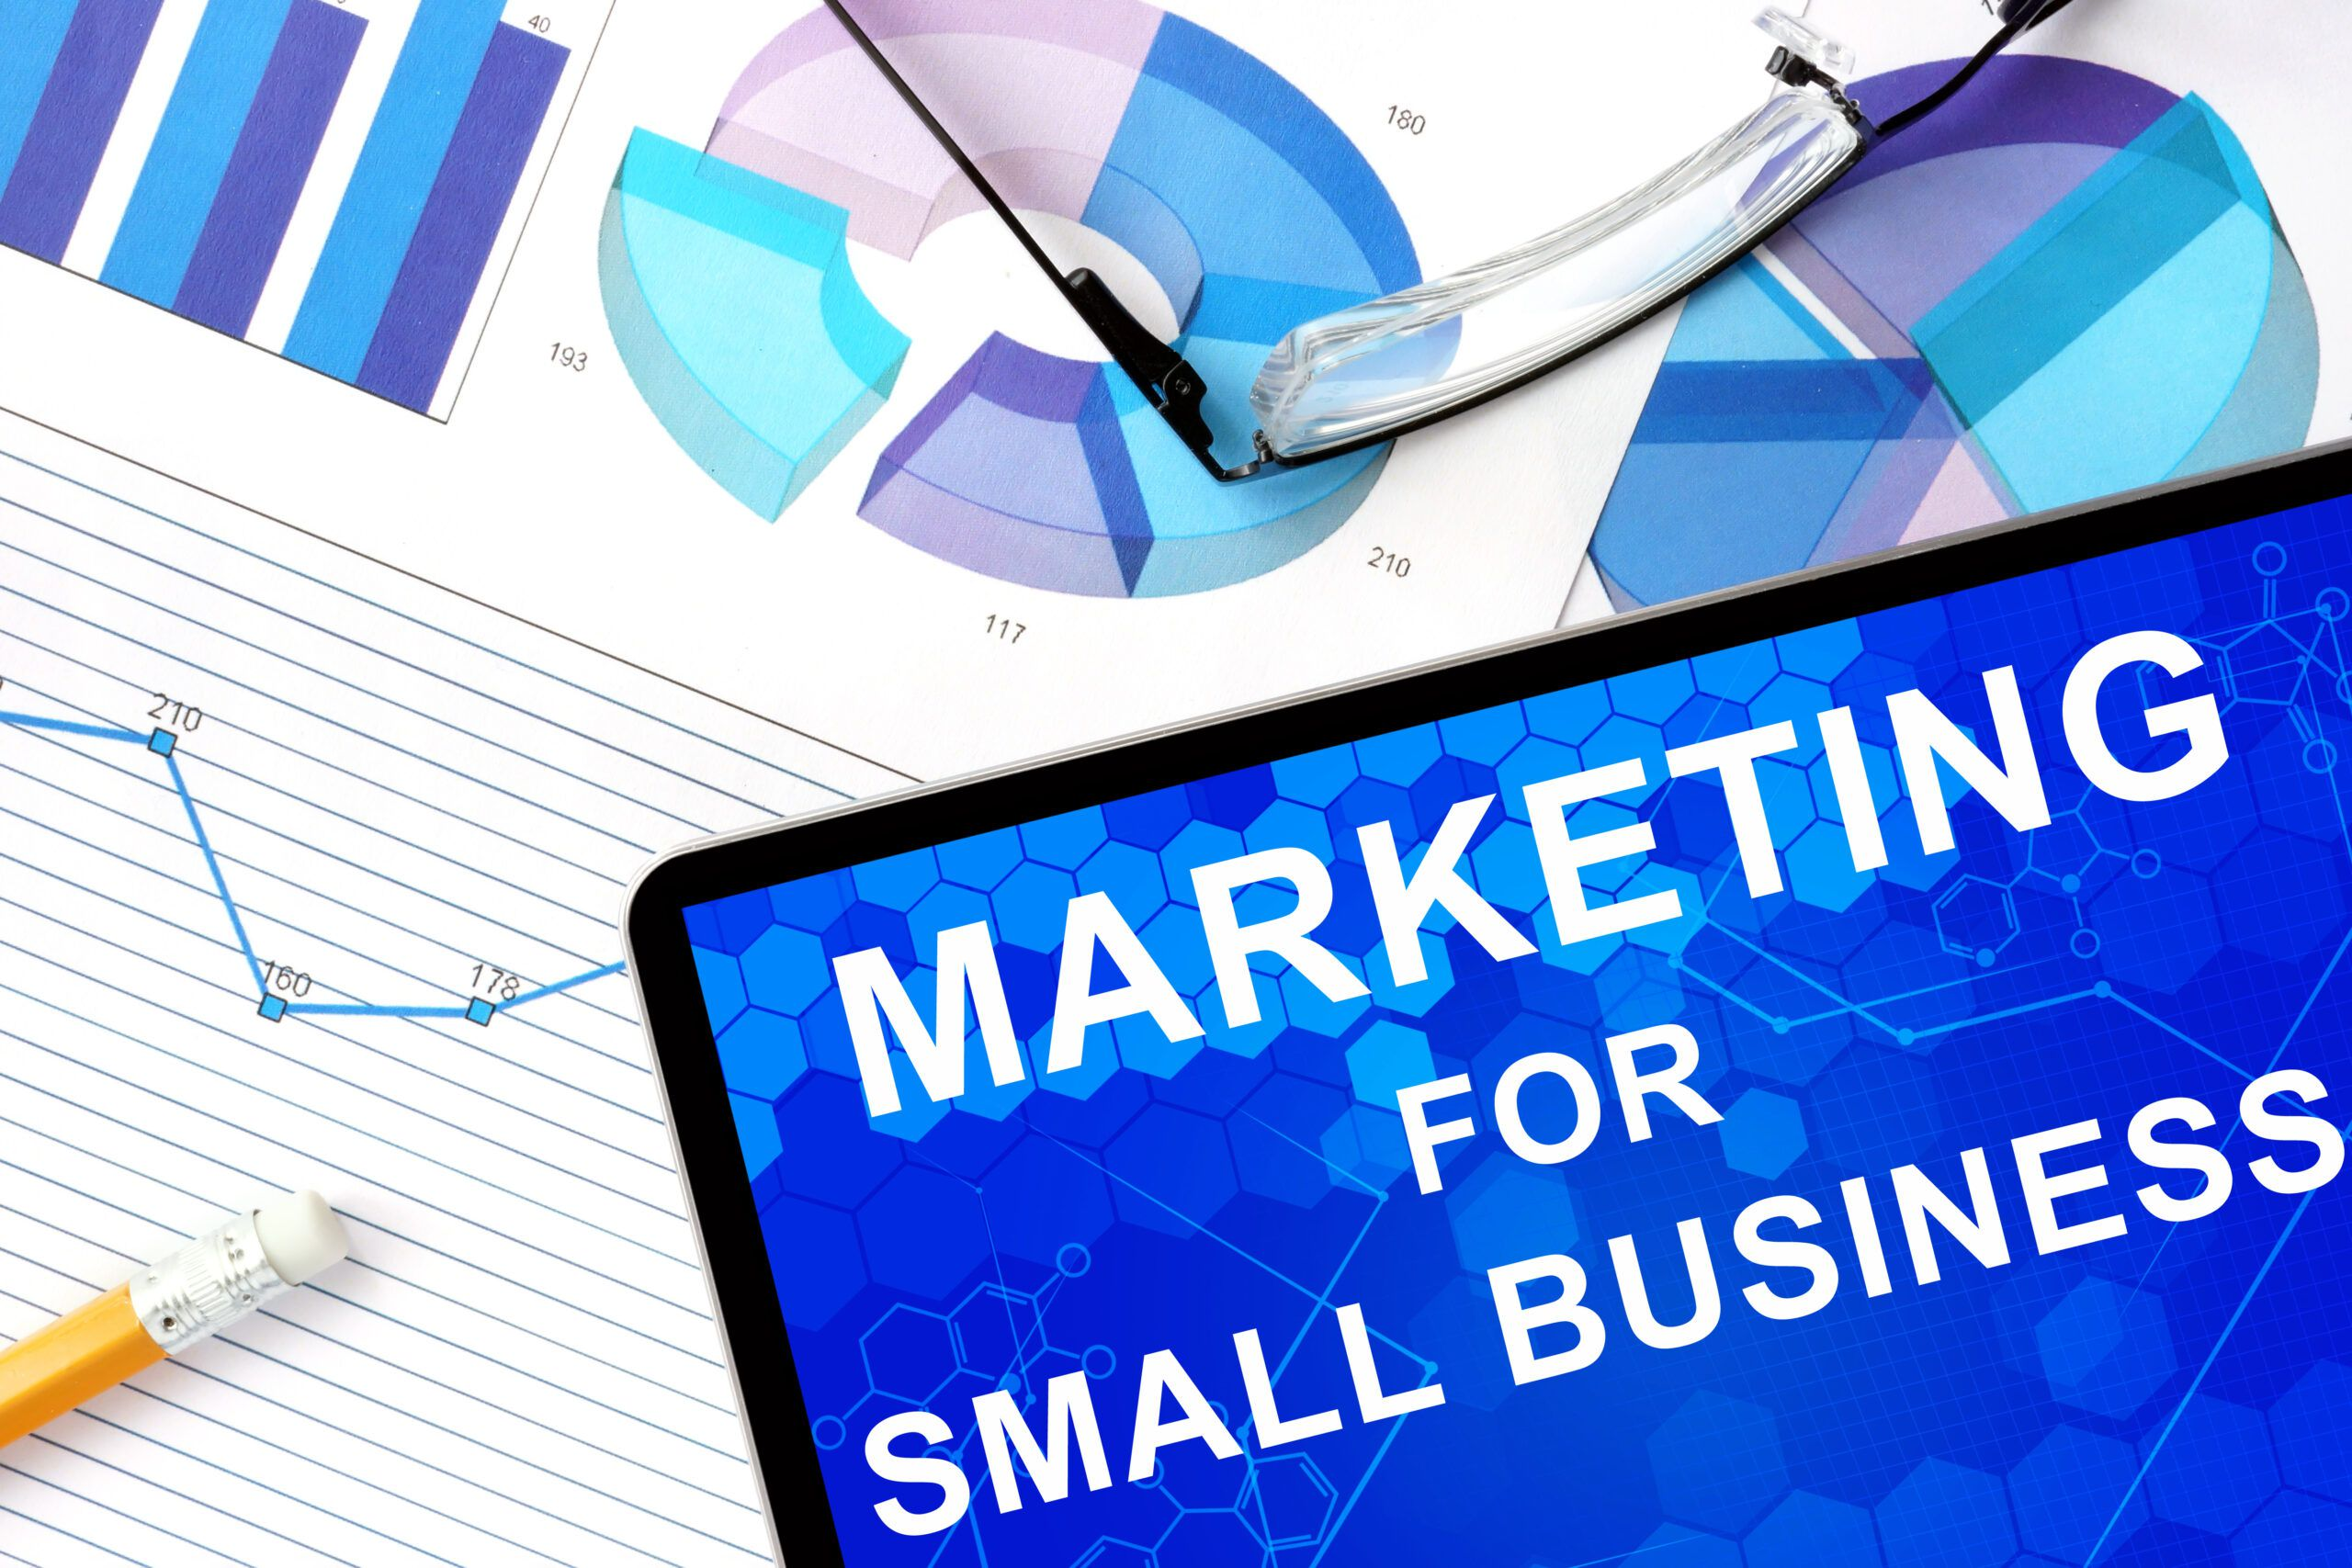 The essential guide to small business marketing